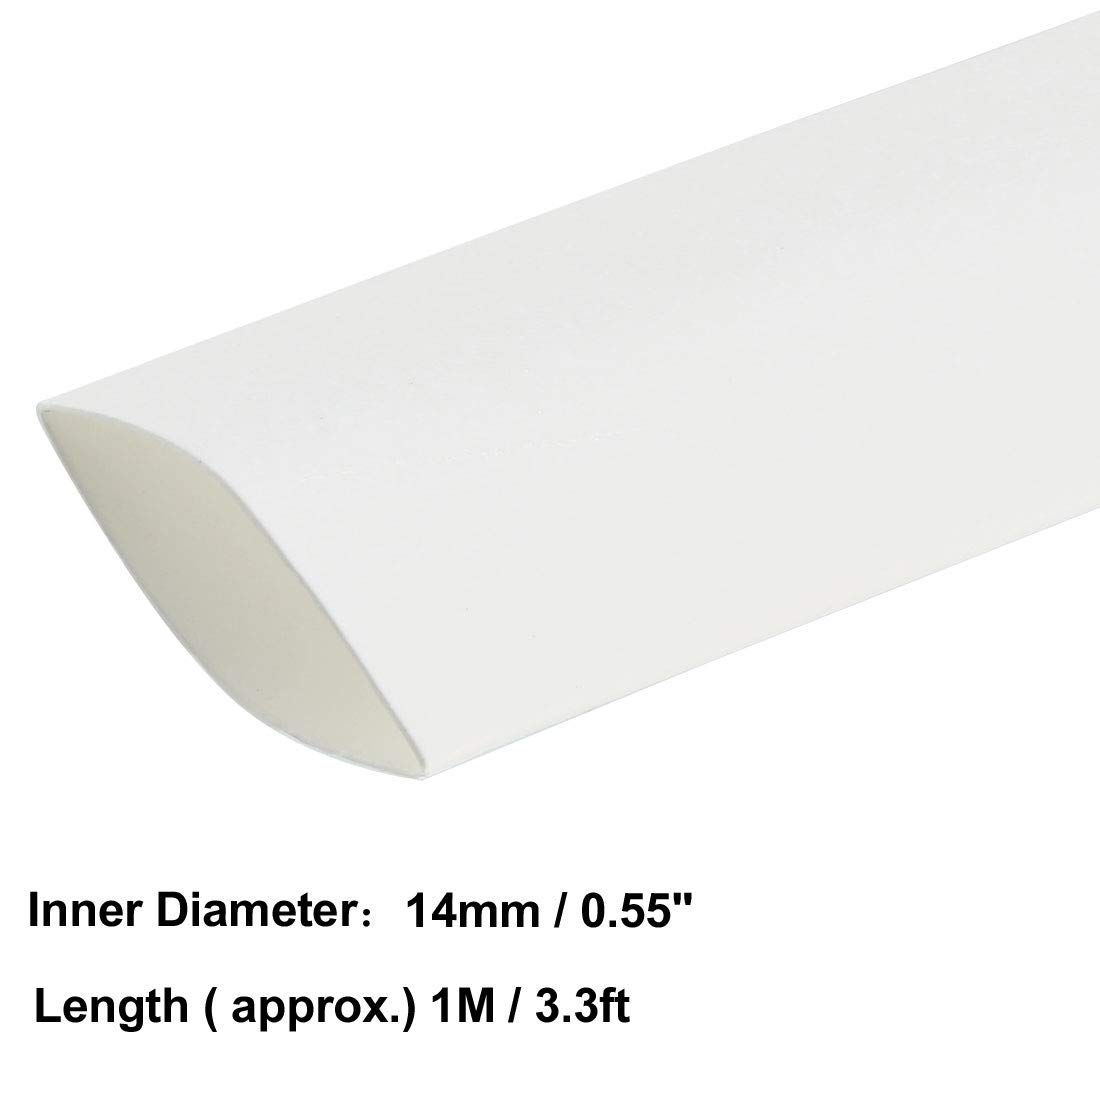 1/ Tube disolation /électrique c/âble fil de tube Gaine Wrap Blanc 14/ mm de diam/ètre 1/ m de long Sourcingmap Heat Shrink Tube 2